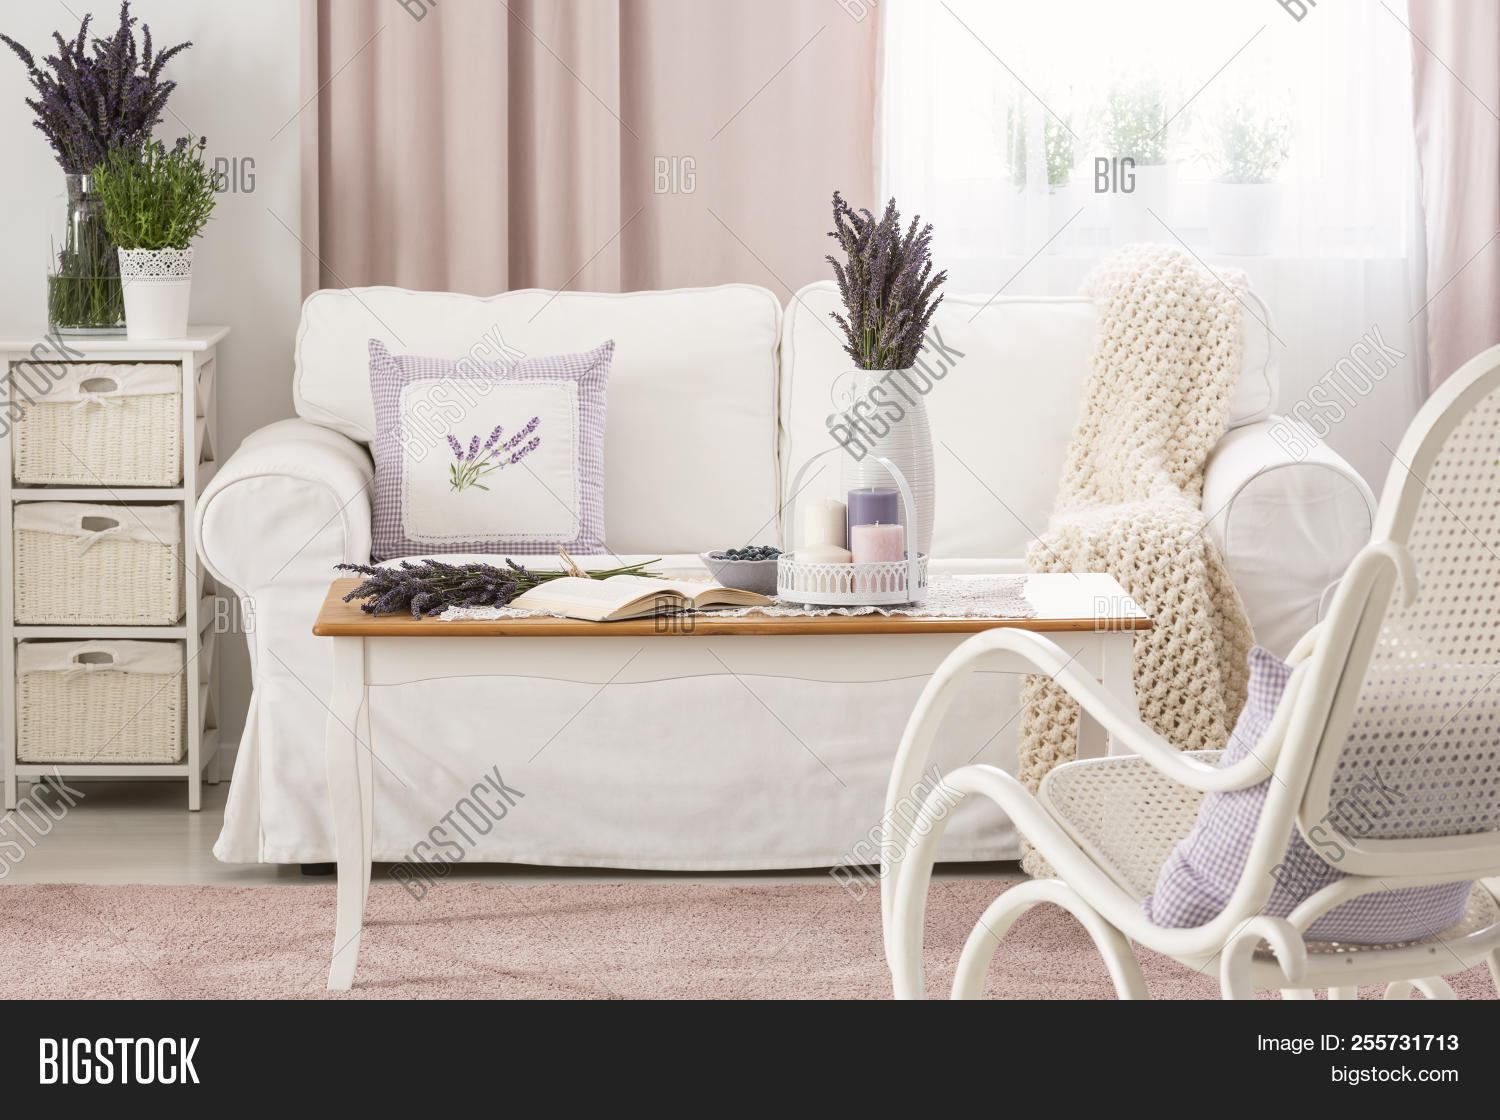 Enjoyable Wooden Coffee Table Image Photo Free Trial Bigstock Download Free Architecture Designs Crovemadebymaigaardcom